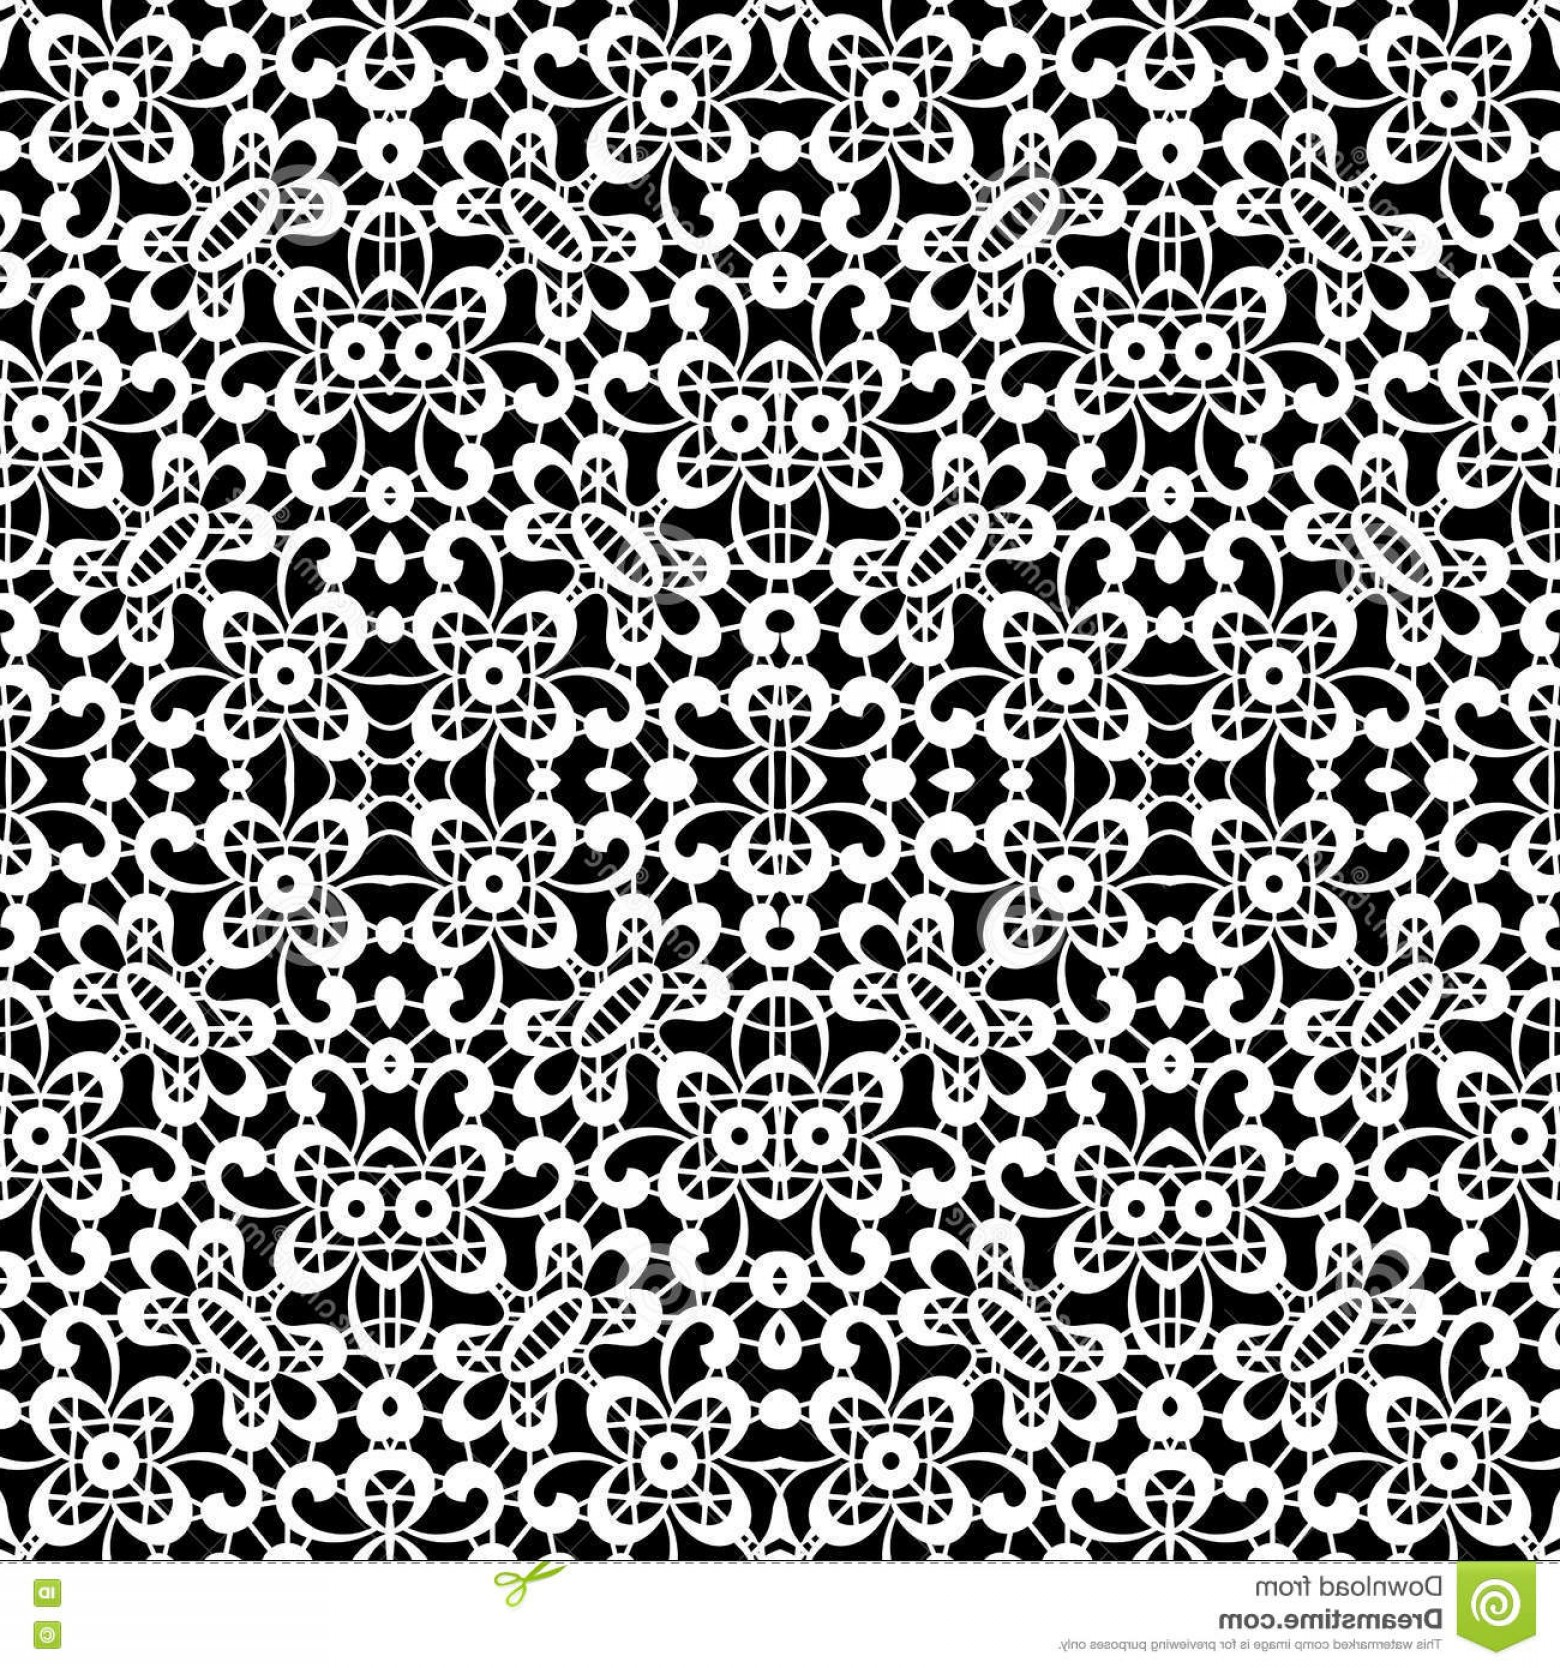 Tulle Black Lace Pattern Vector: Stock Illustration Black White Lace Texture Seamless Pattern Tulle Image